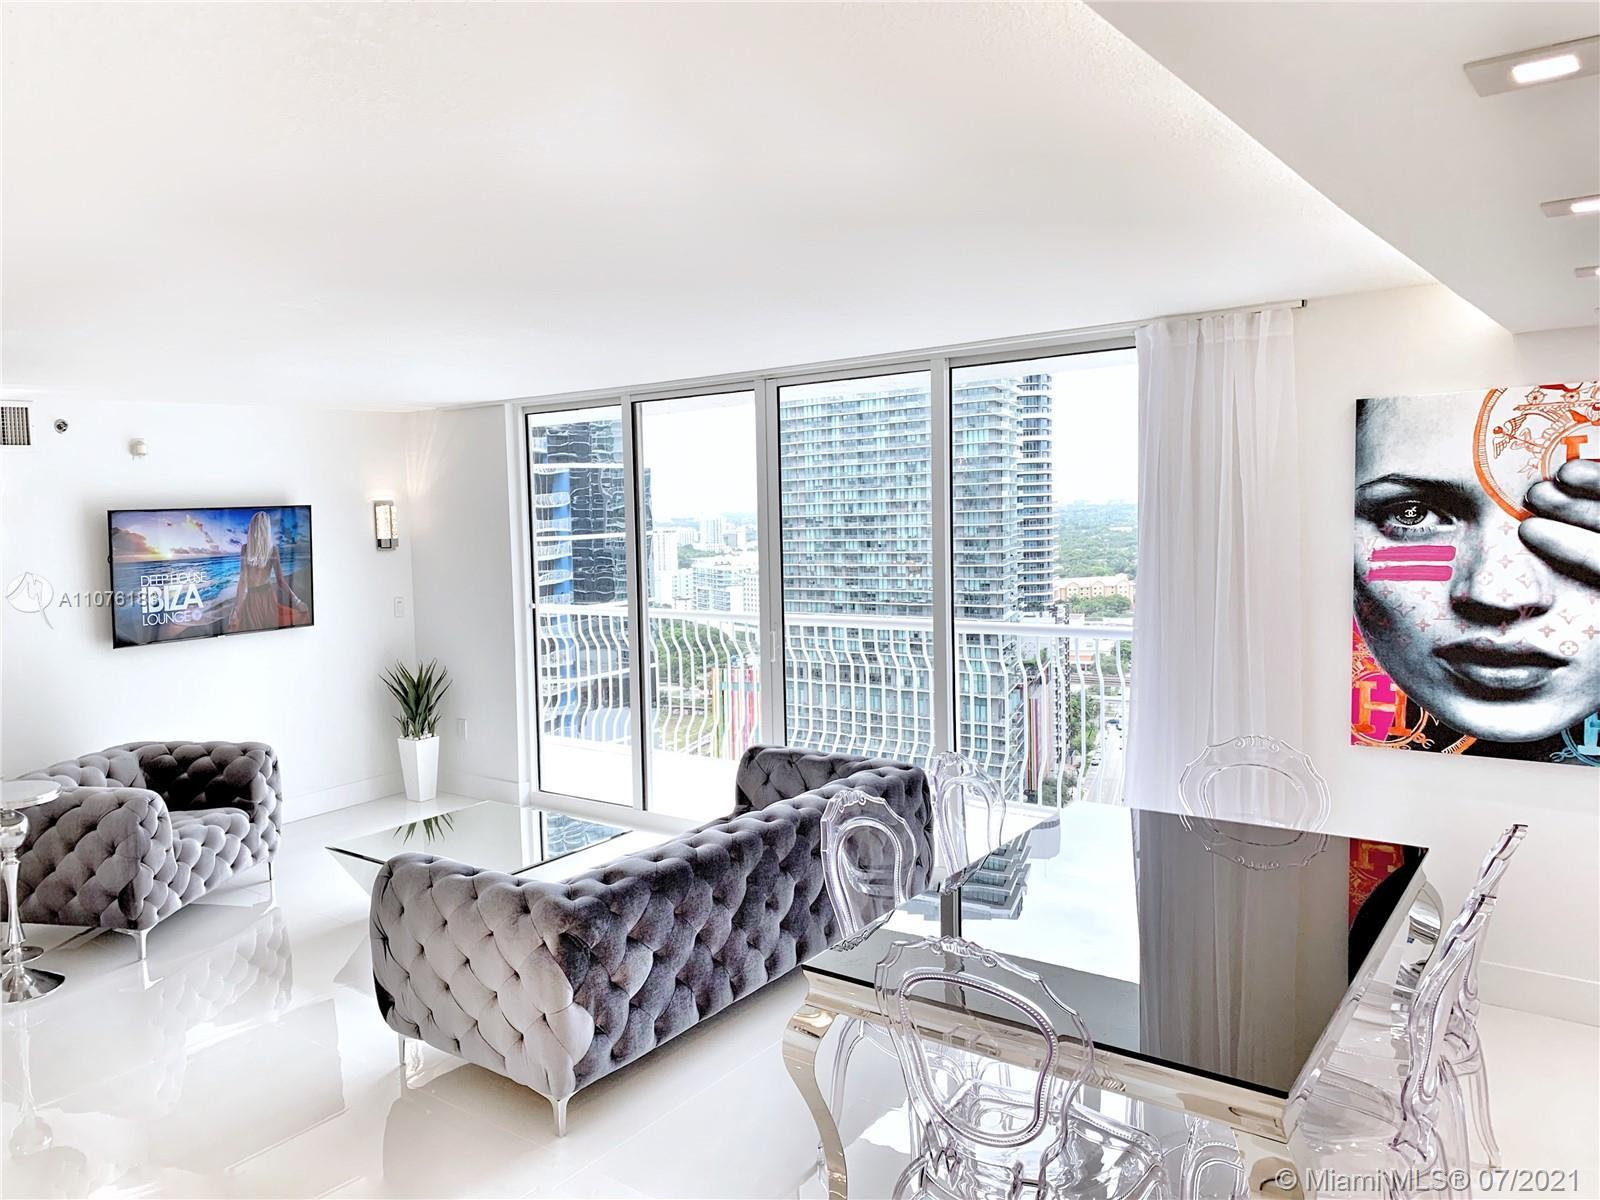 Spectacular sky residence in the heart of Brickell offering mesmerizing ocean views and dramatic cit